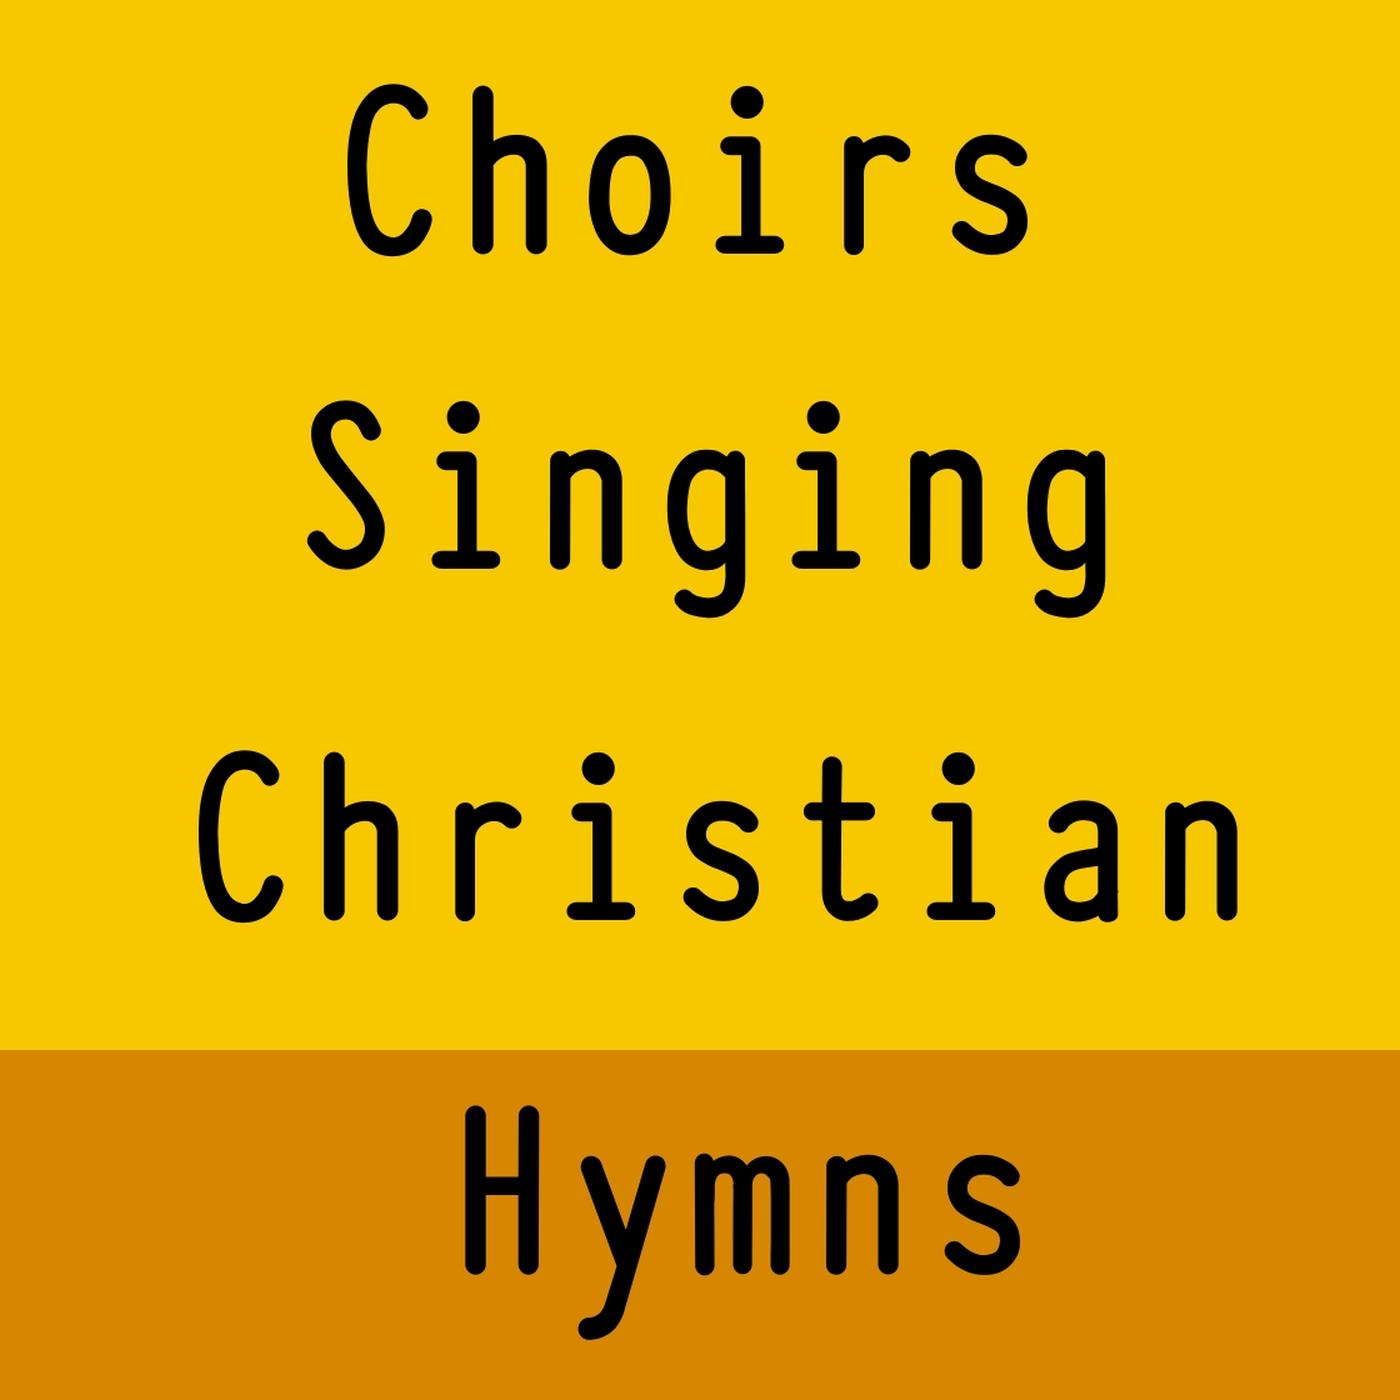 Hymns: Soldiers of/More love/Take us in